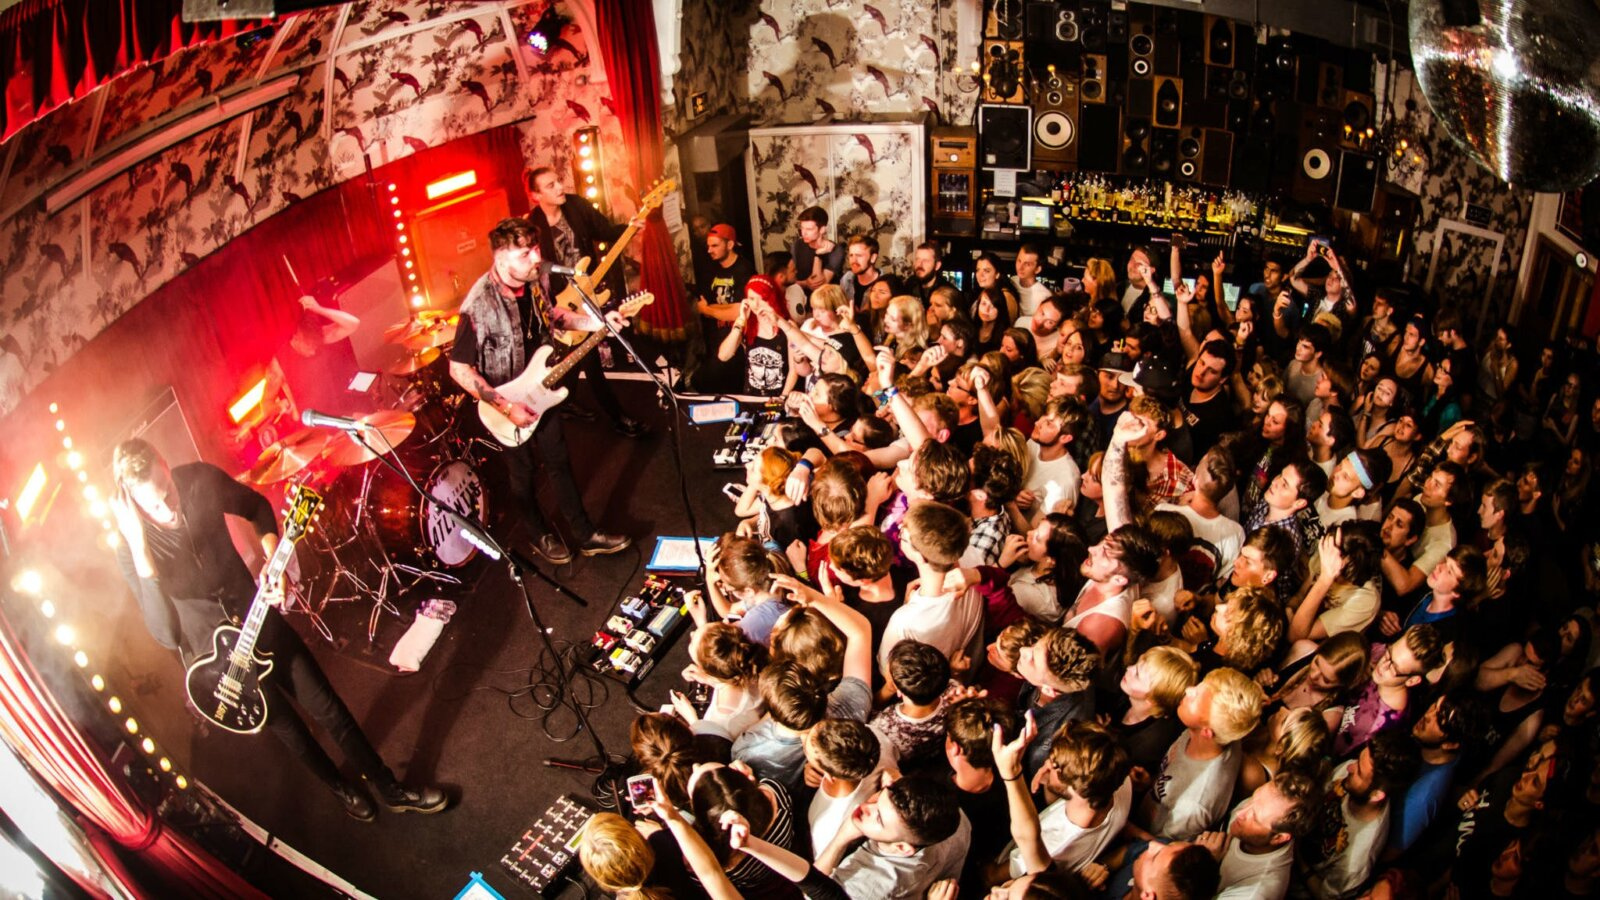 People share their favourite Deaf Institute and Gorilla memories after venues close permanently, The Manc